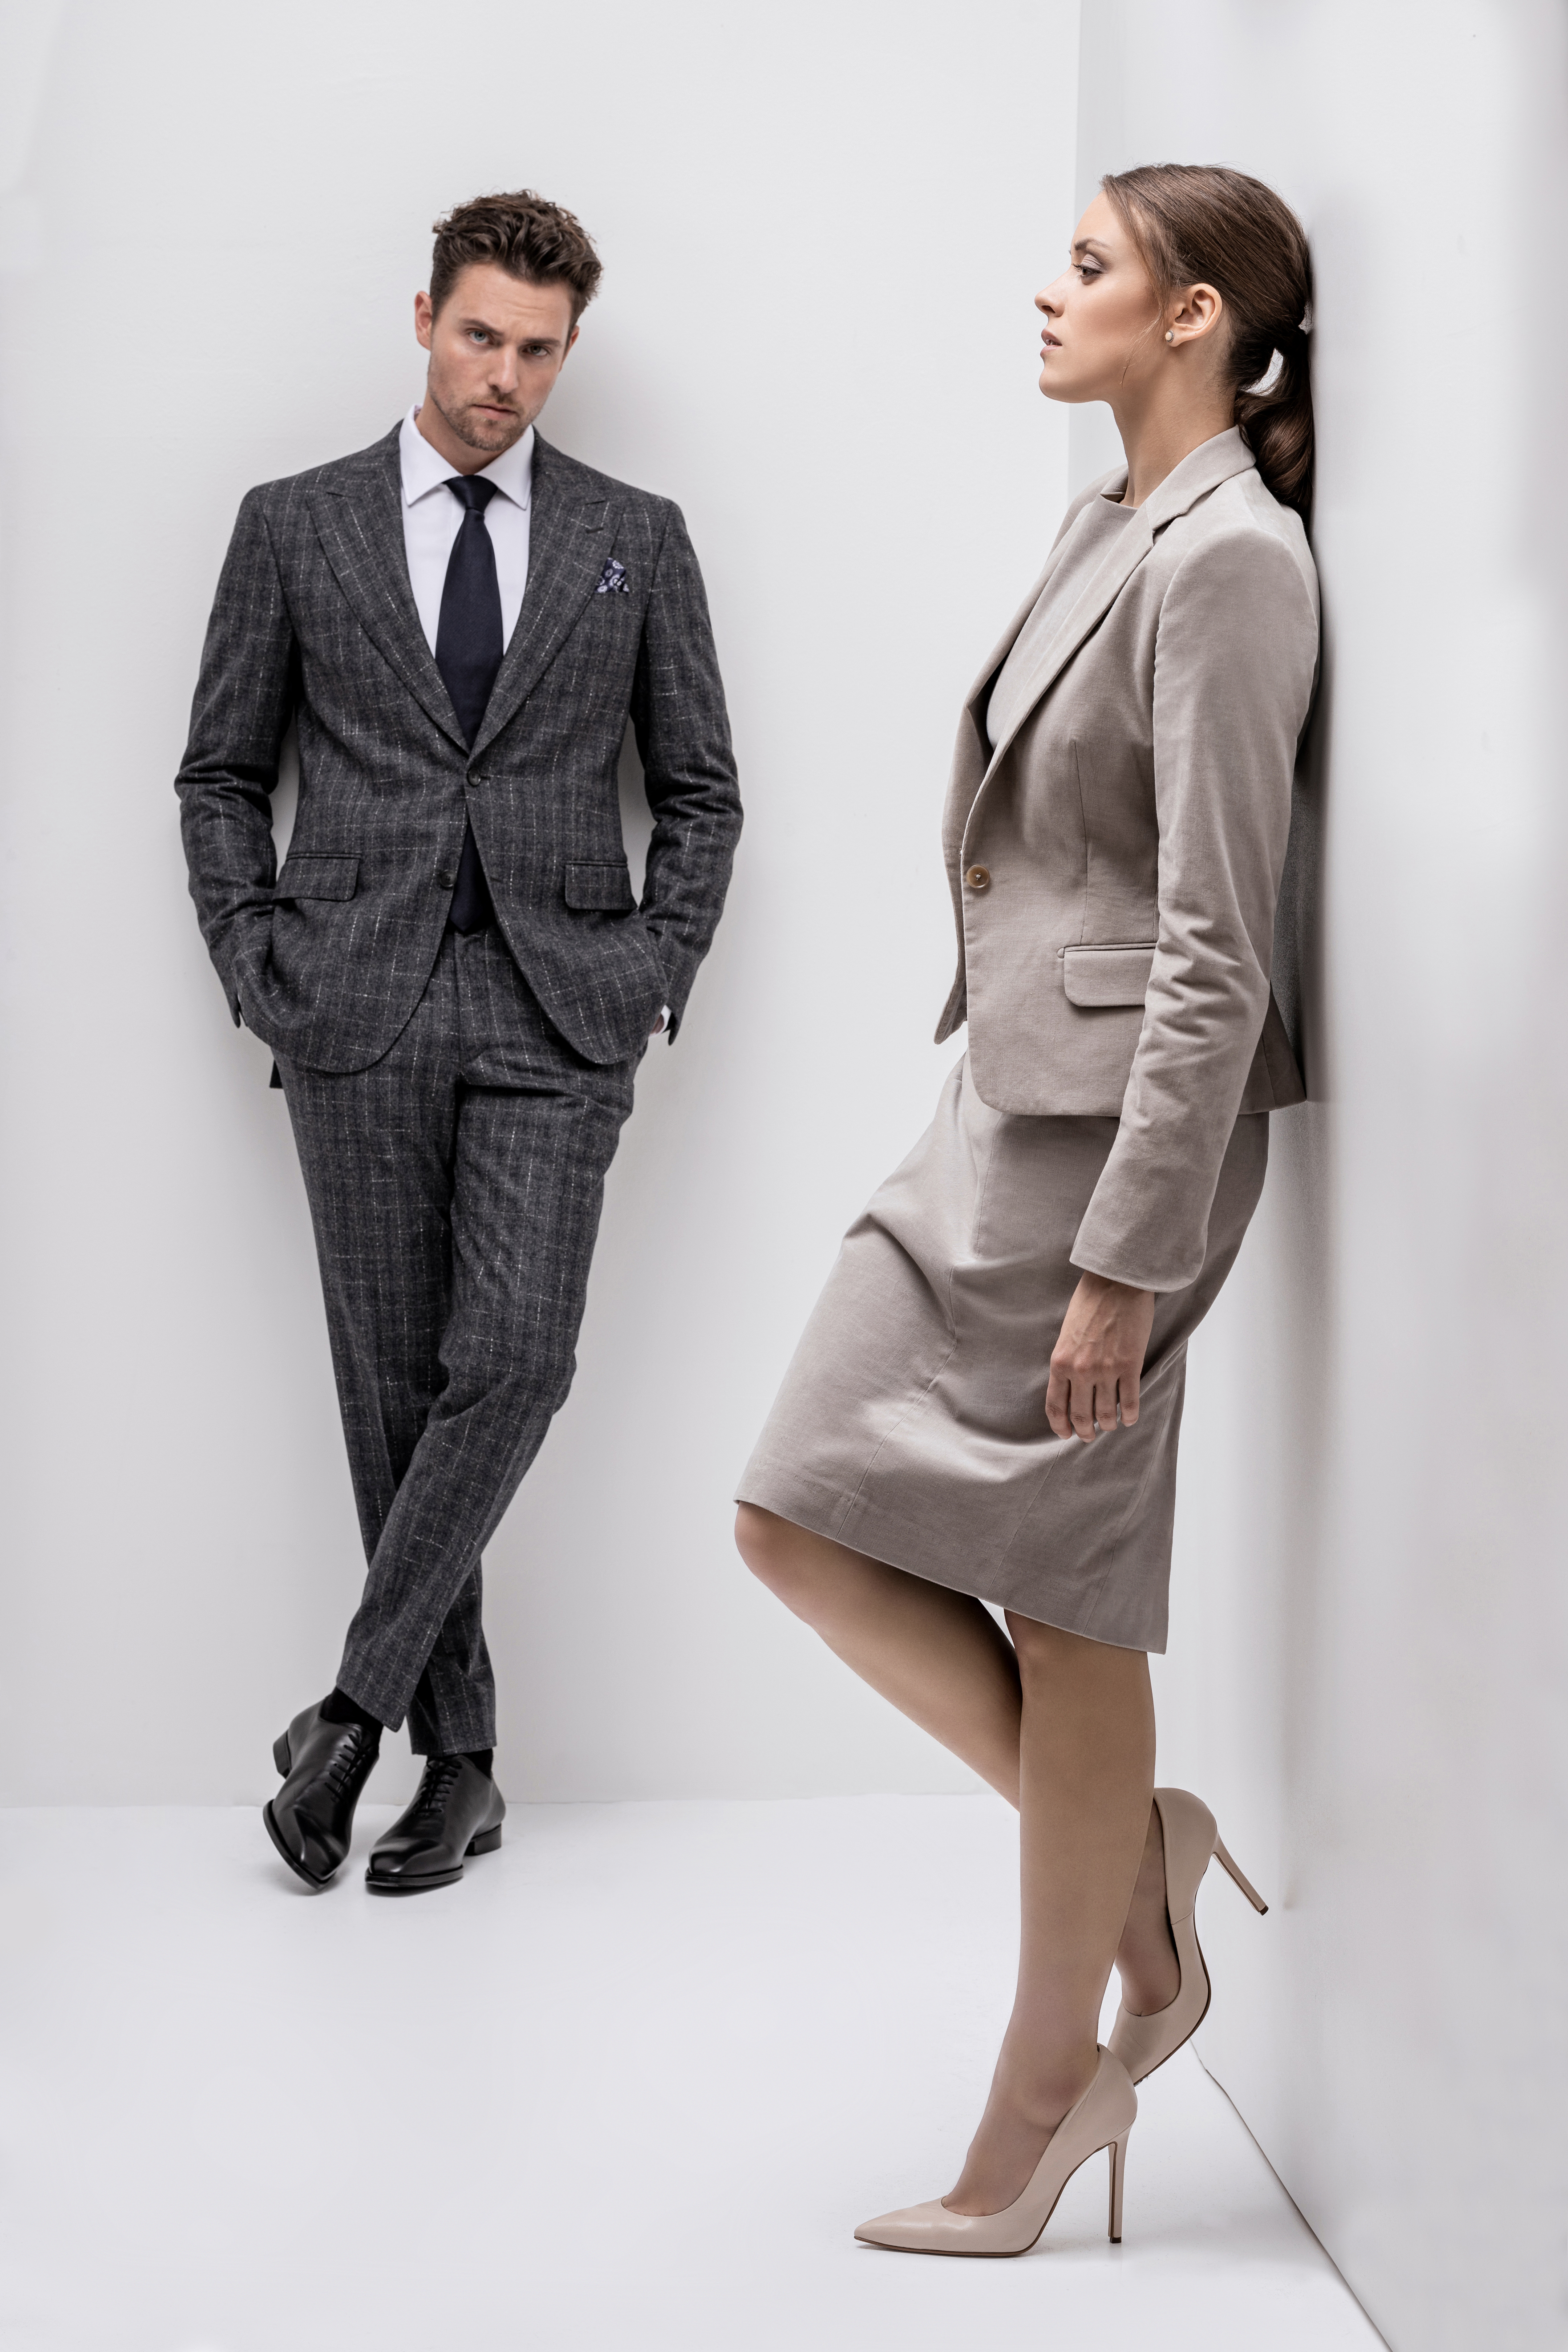 www.richardfox.co Ladies and gent's custom made suits